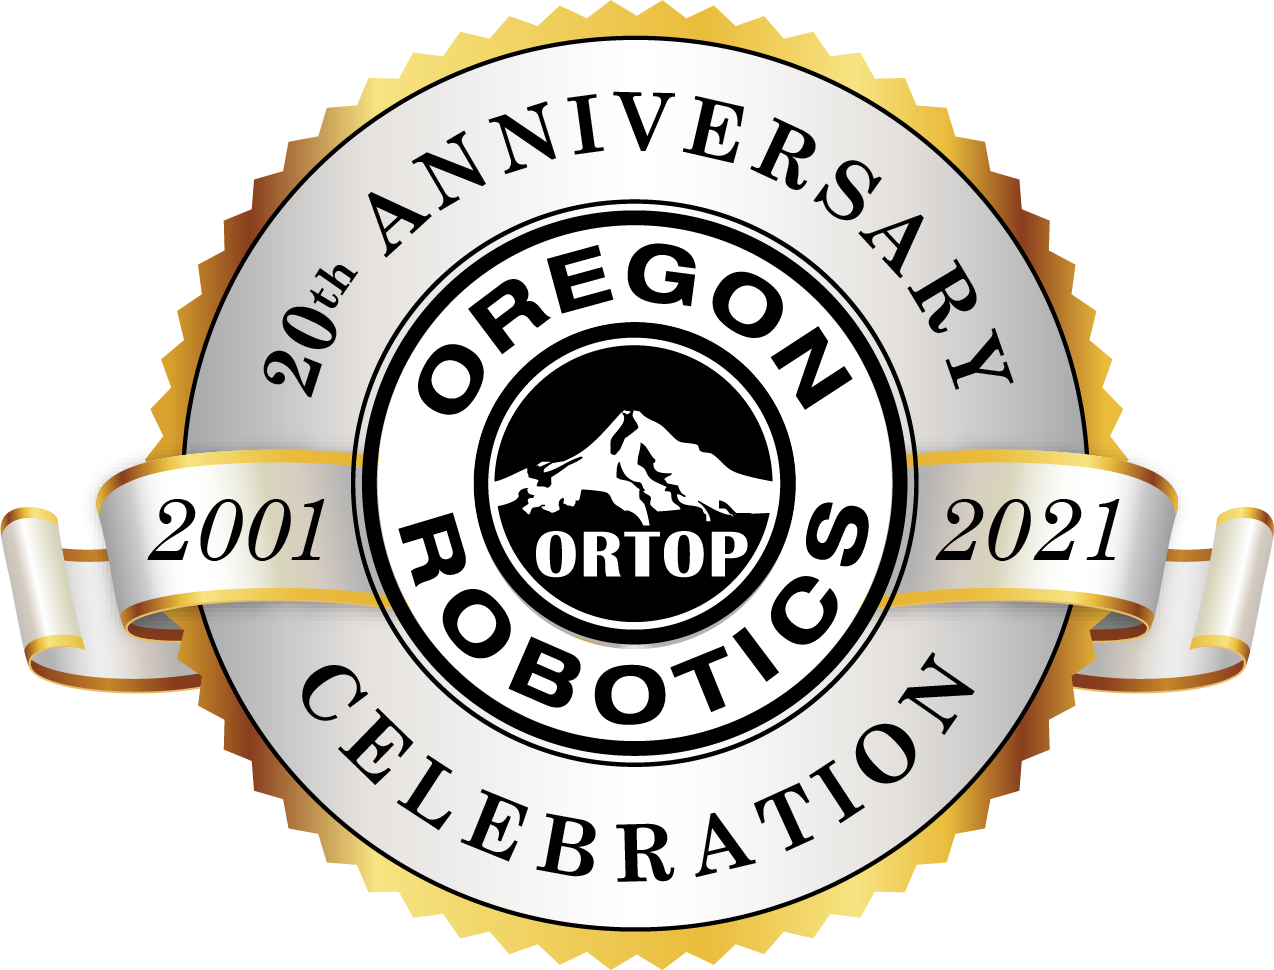 Copy of ORTOP LOGO 20th anniversary without tag line